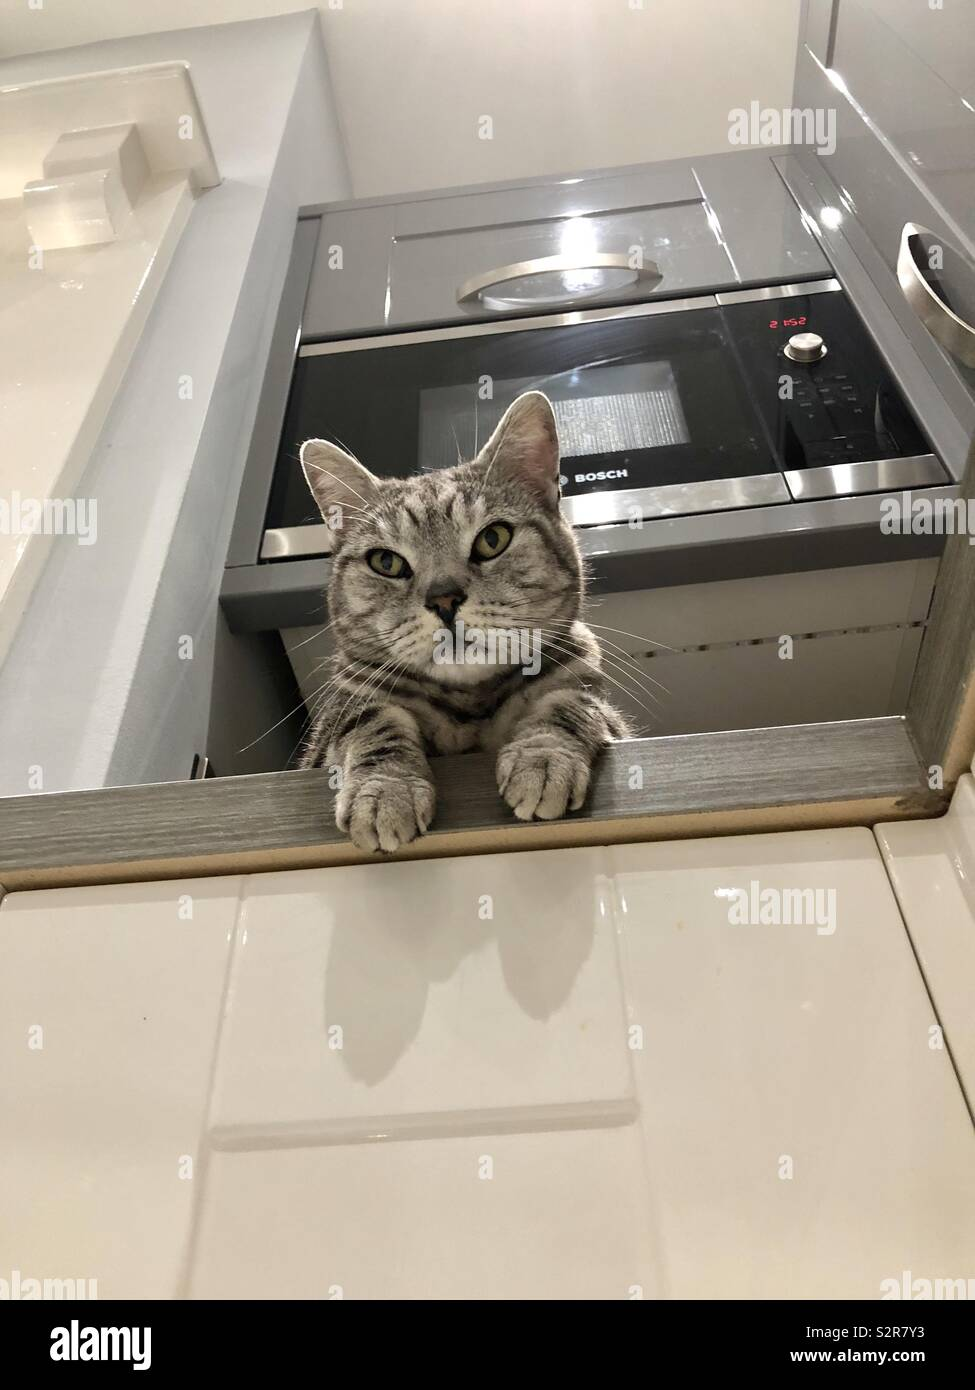 Cat, British Shorthaired Silver Tabby - Stock Image